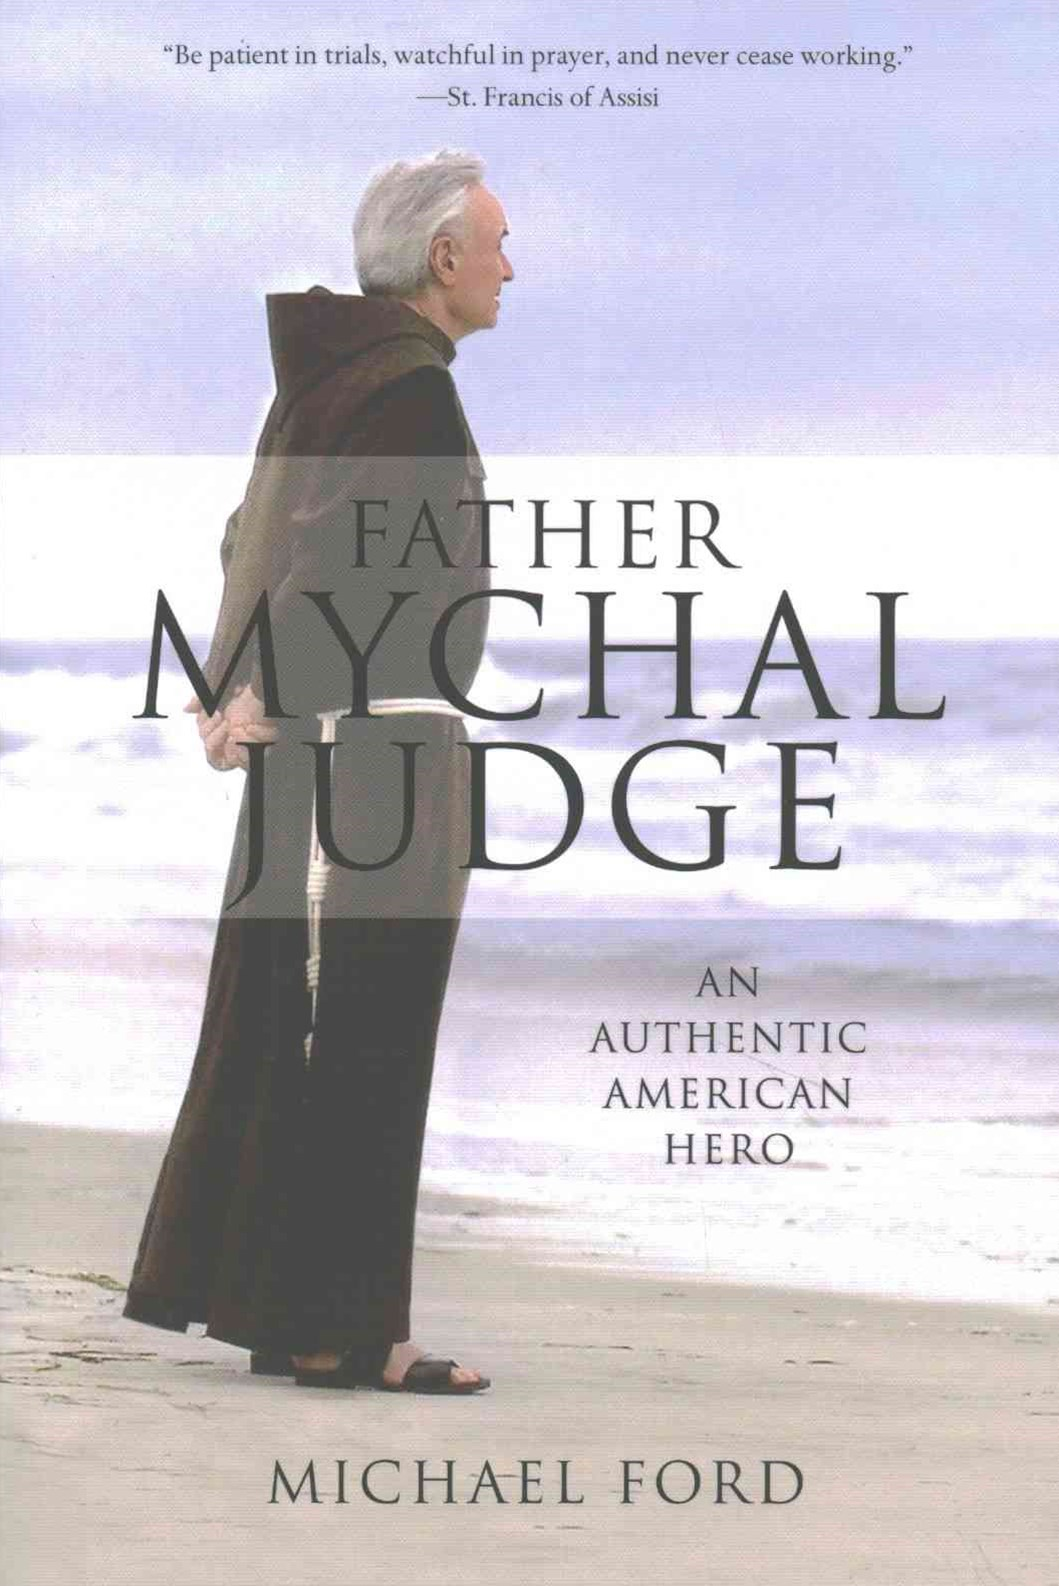 Father Mychal Judge